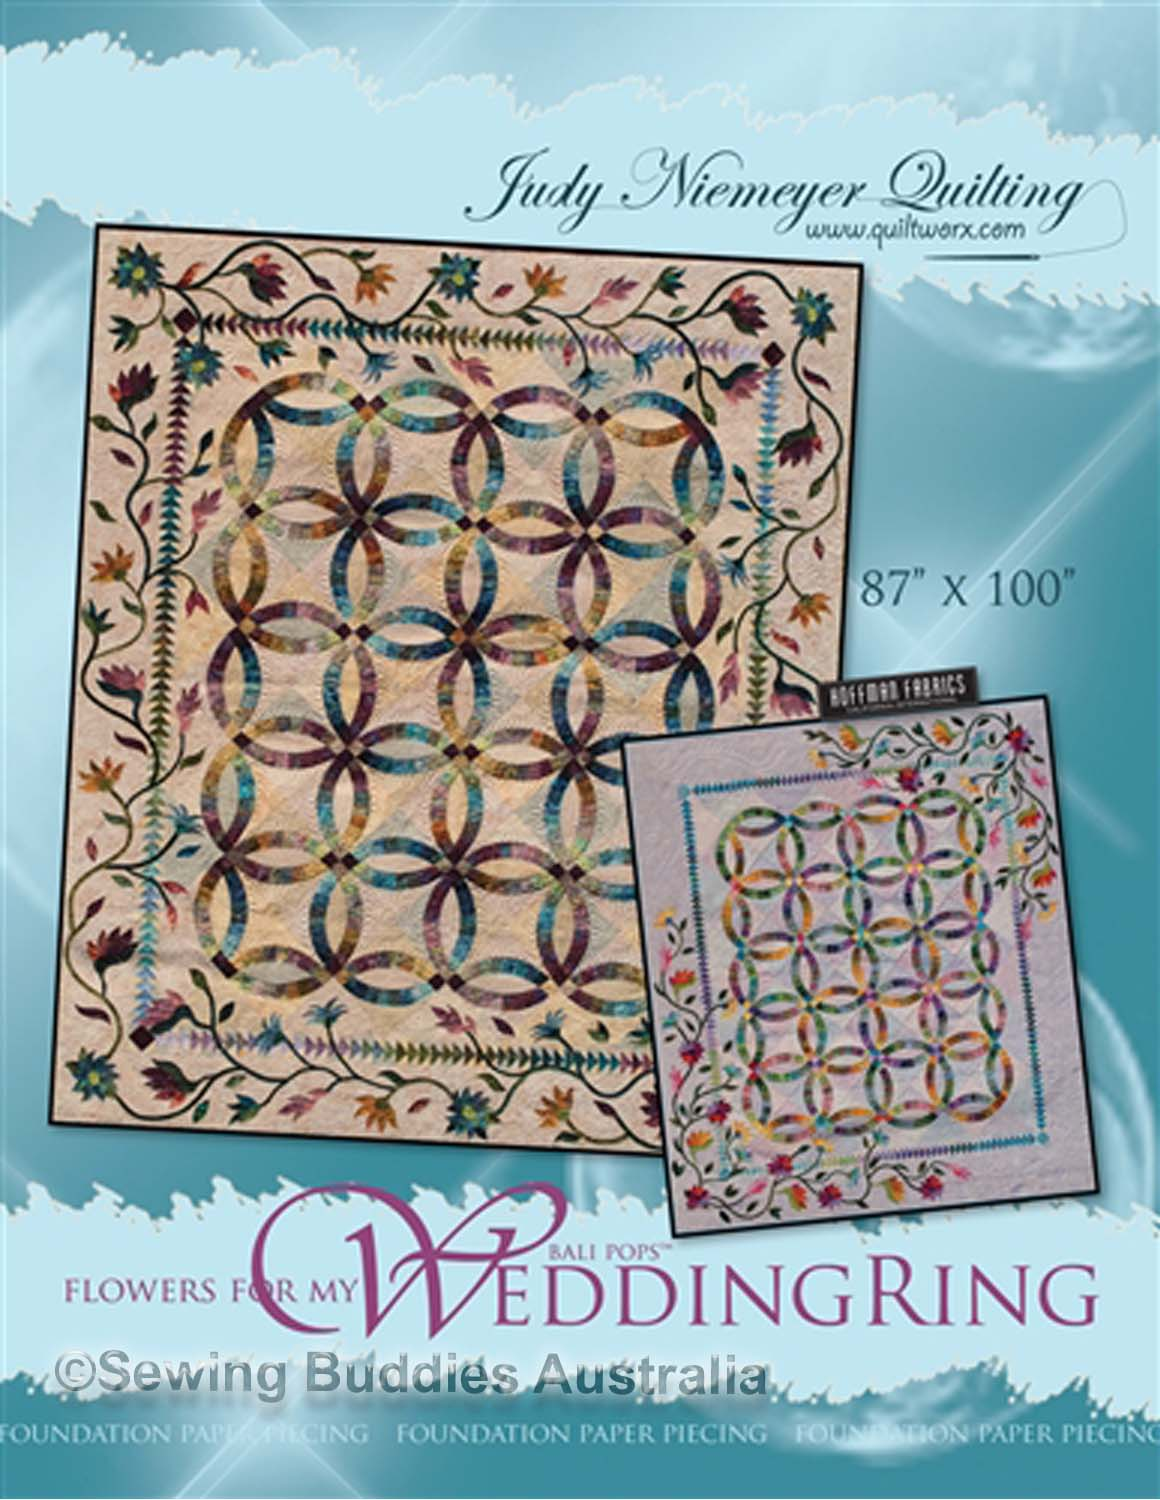 Flowers For My Wedding Ring Quilt Pattern By Judy Niemeyer